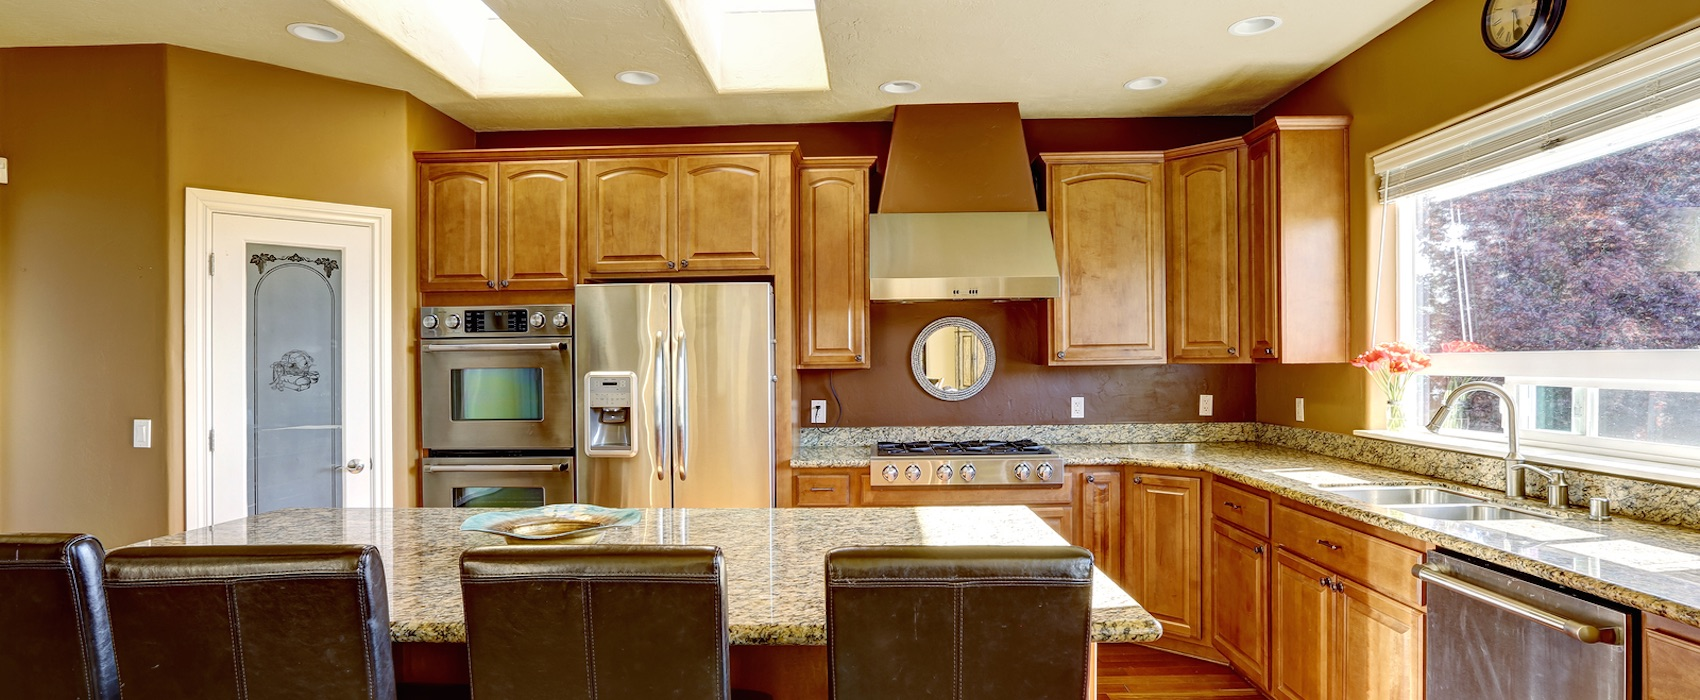 Granite Depot Denver Colorado Countertops